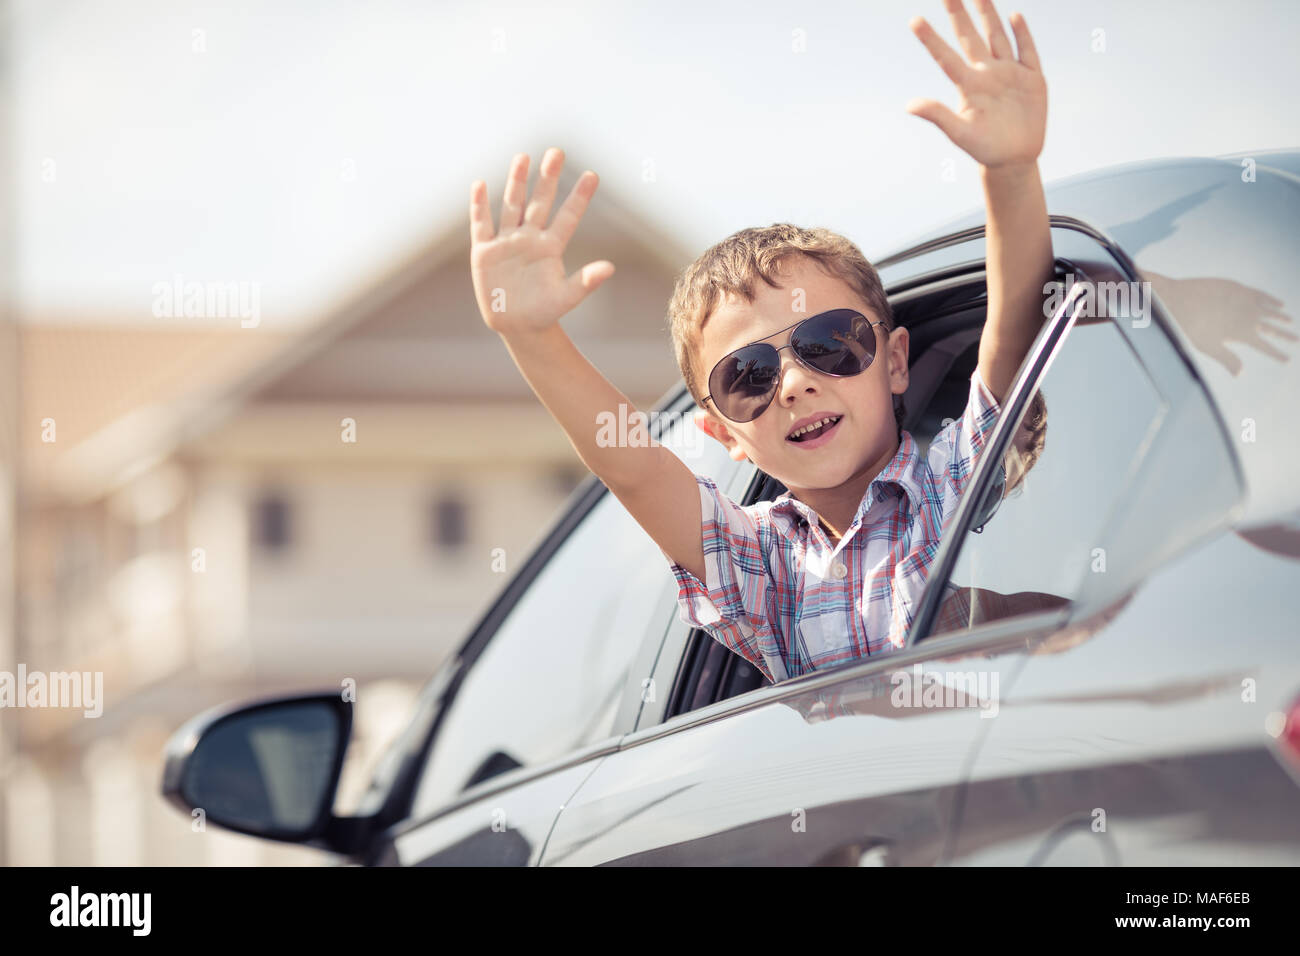 One happy little boy sitting in the car at the day time. Concept of summer vacation. - Stock Image